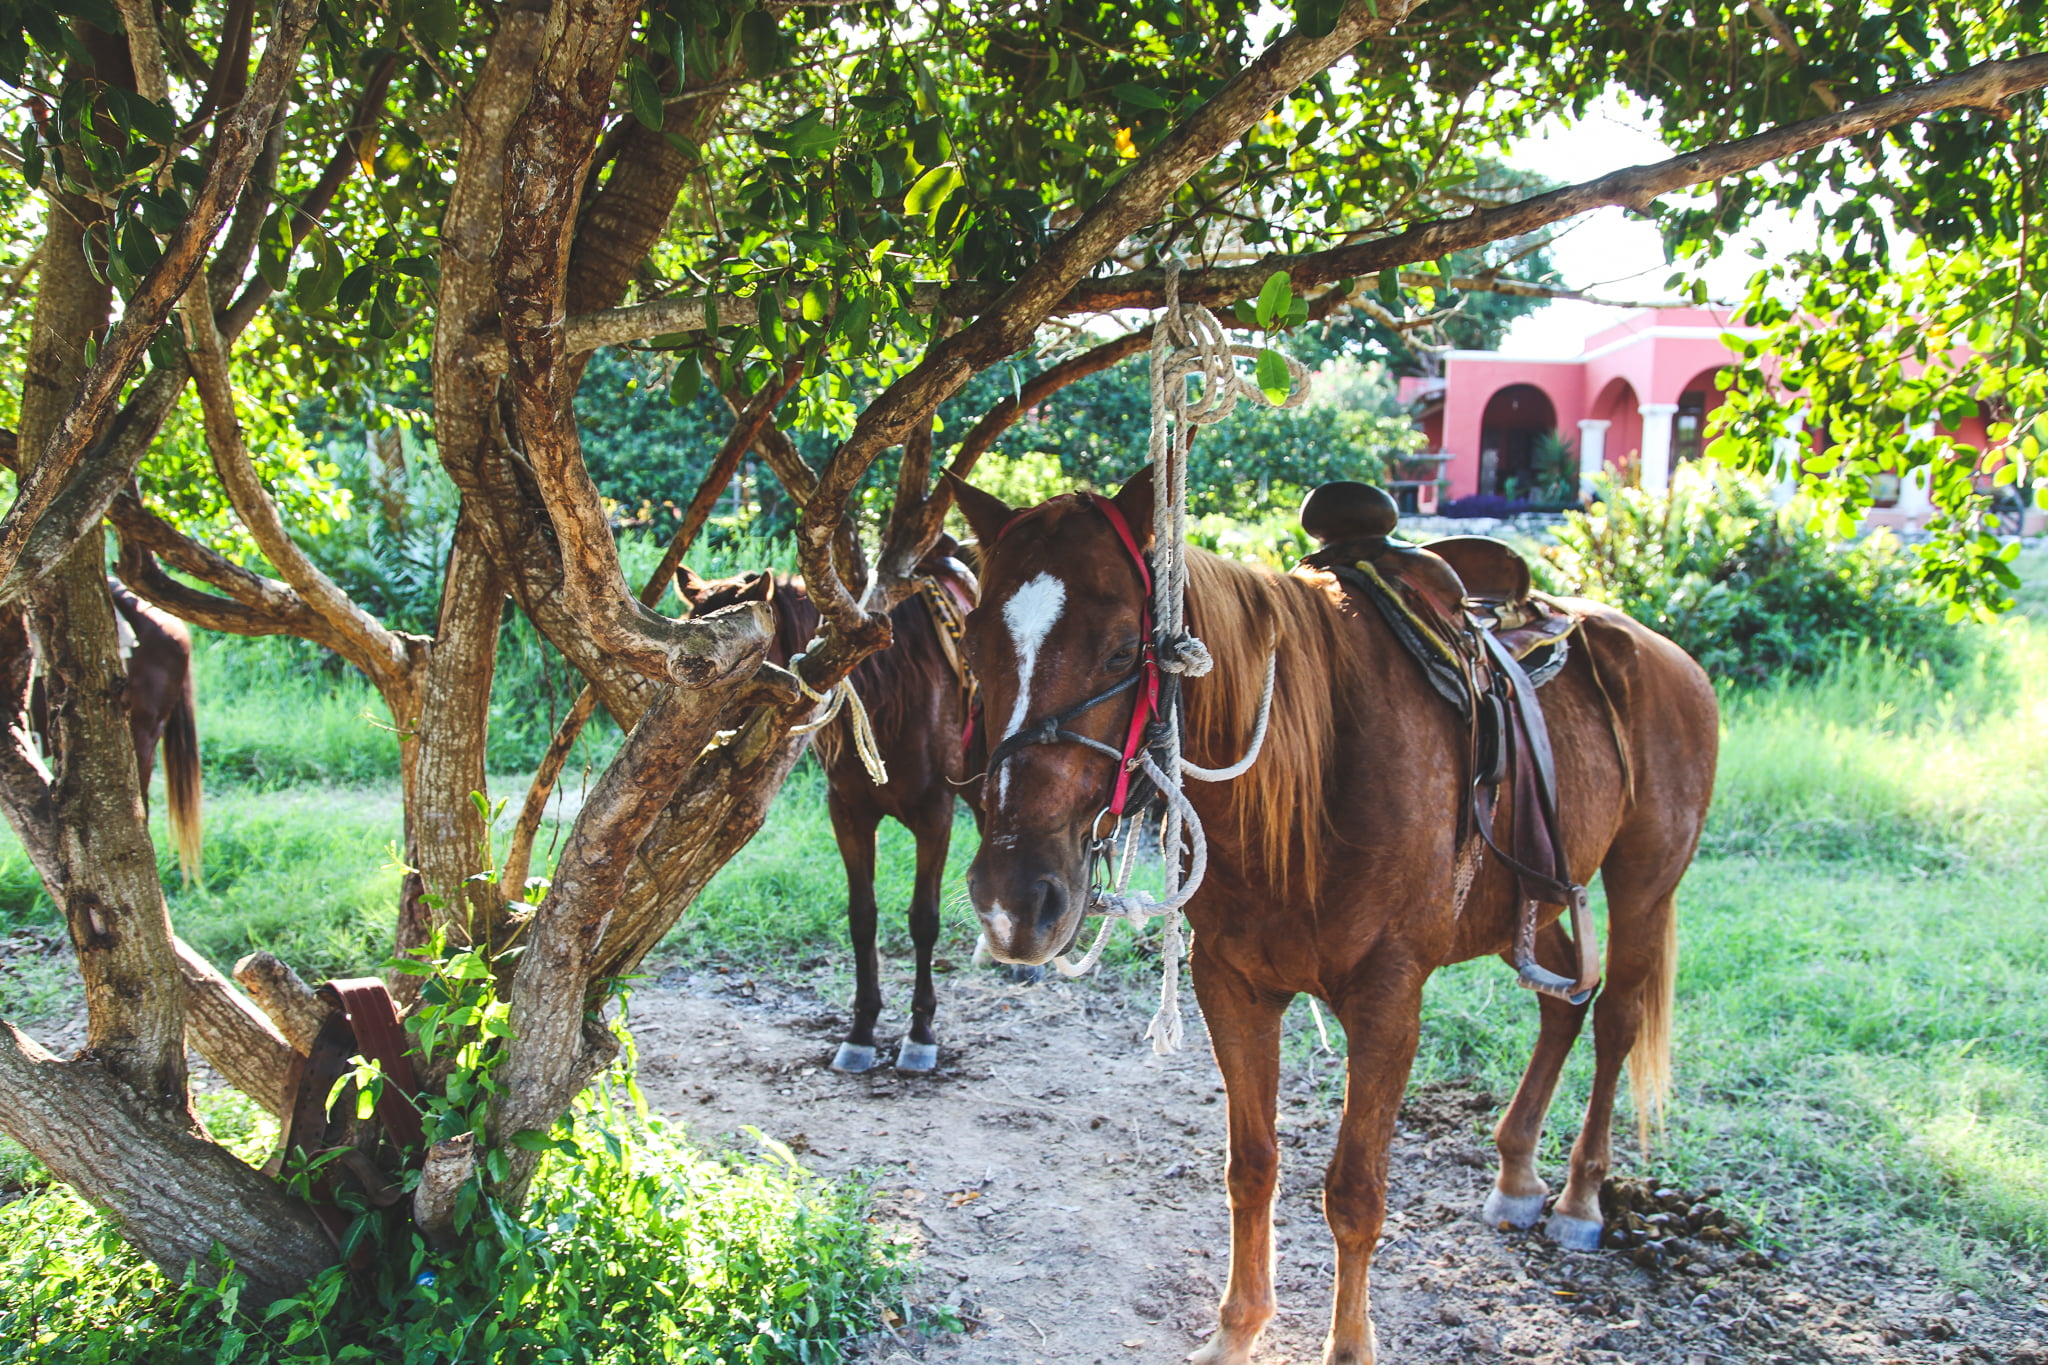 Horses in the Mexican Riviera